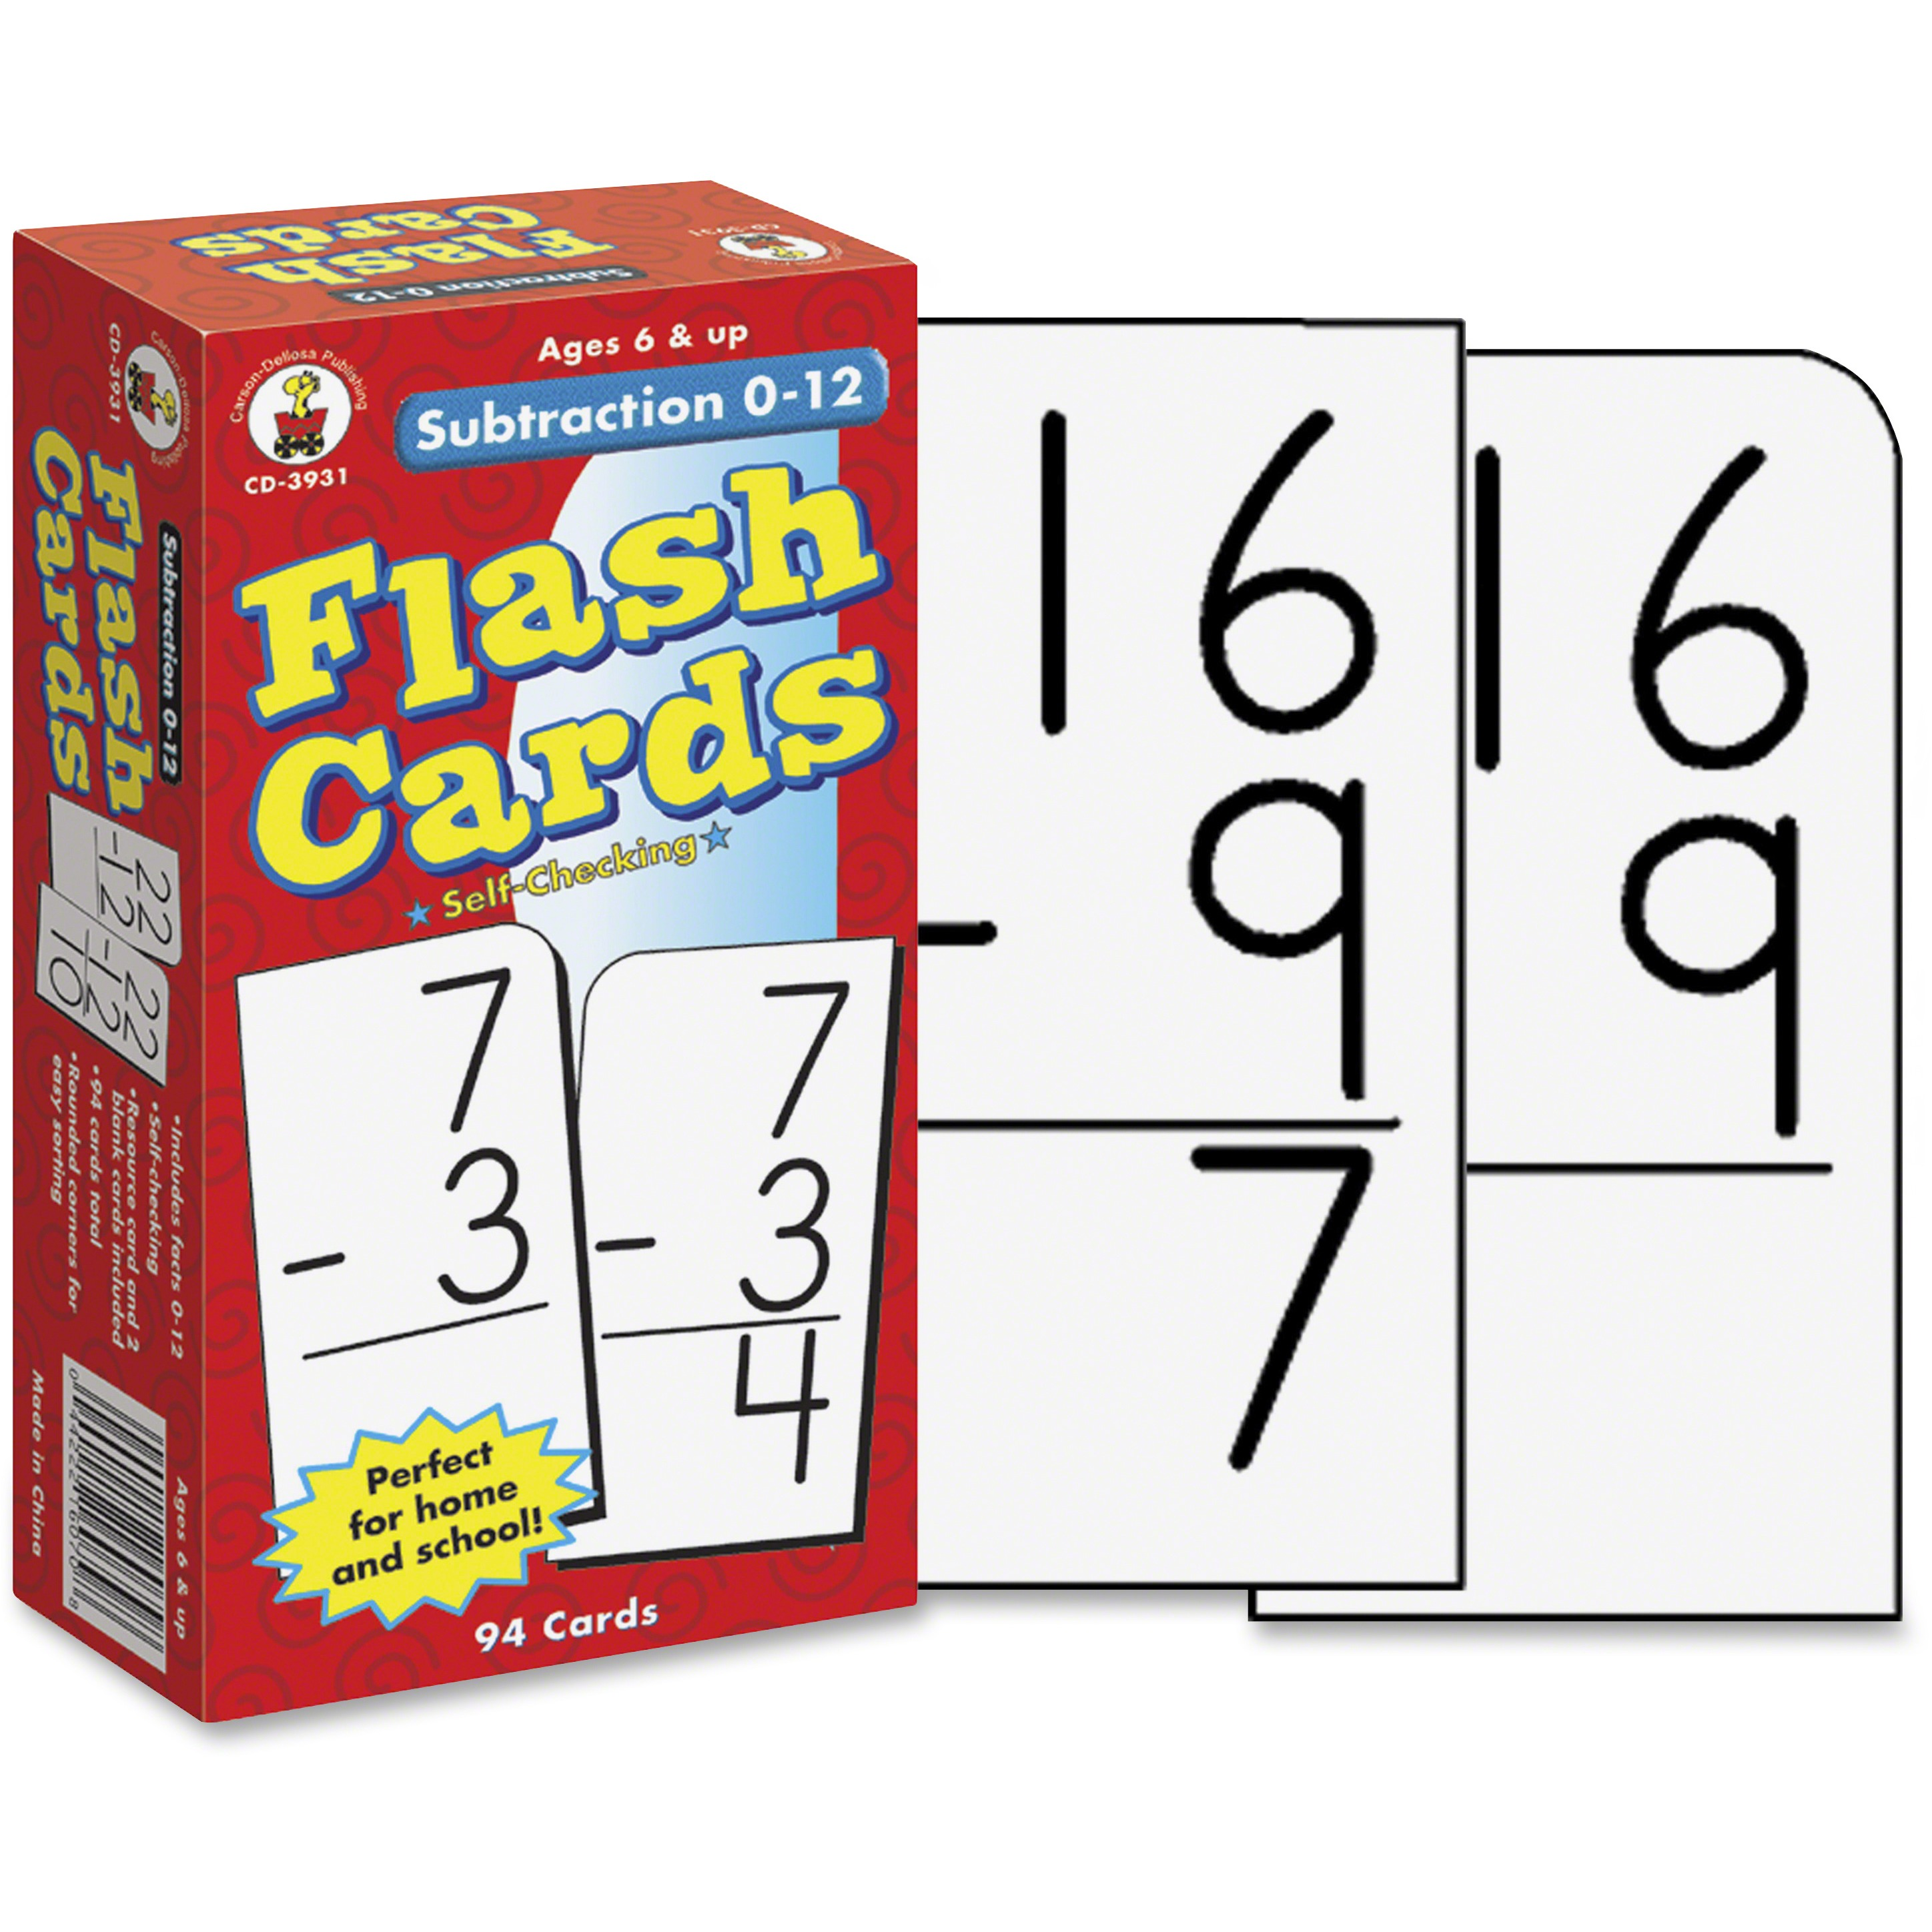 Carson-Dellosa Grades 1-3 Subtraction 0-12 Flash Cards